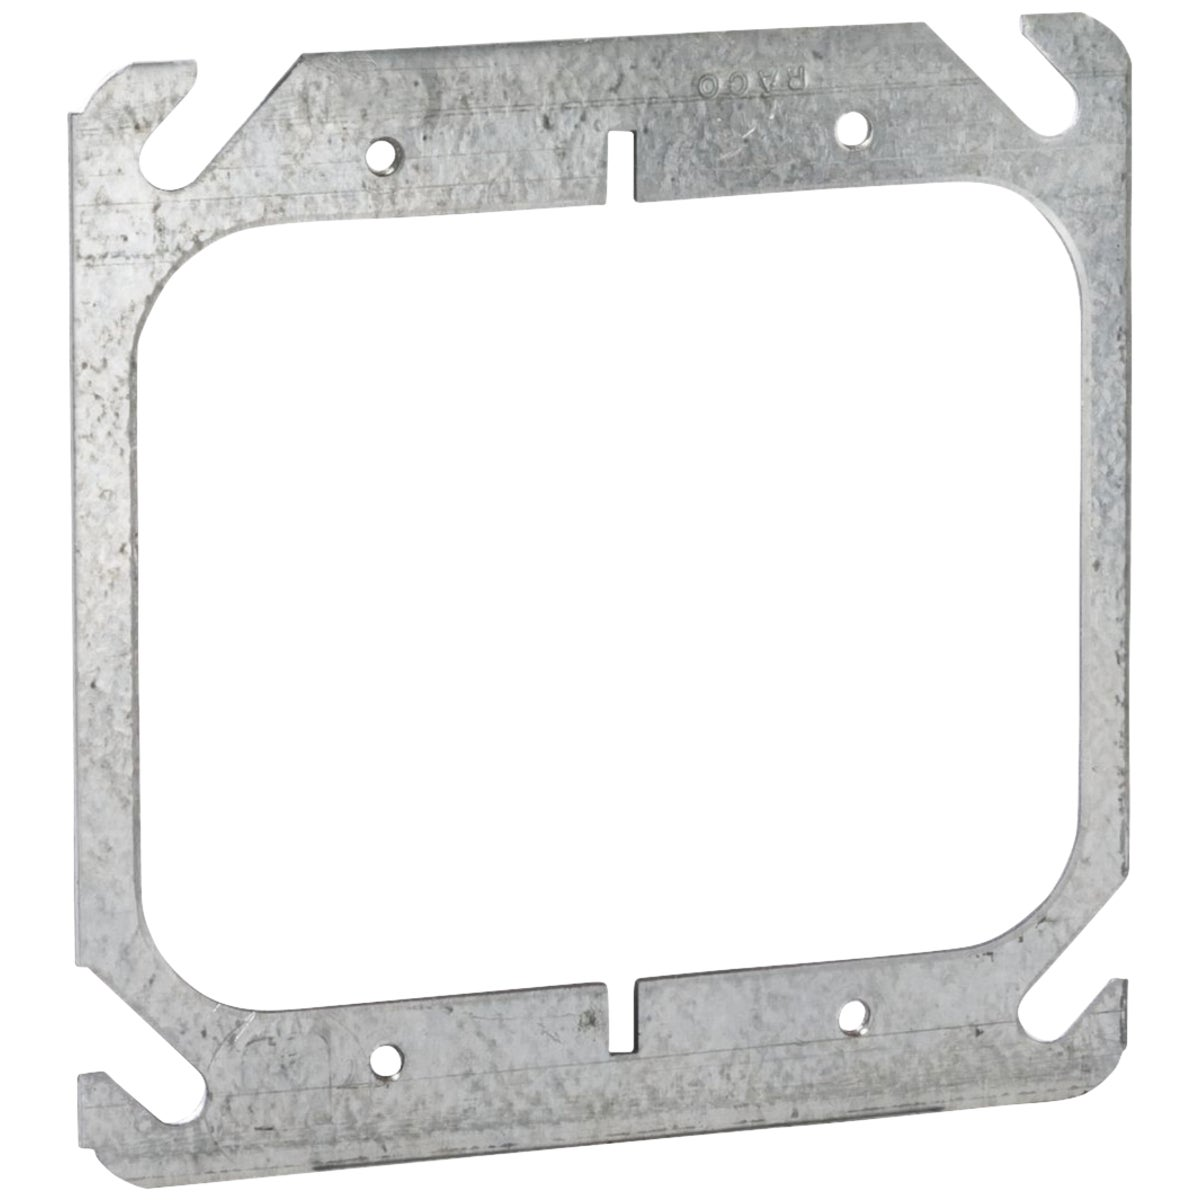 "4"" SQ 2-DEVICE COVER - 52C00 by Thomas & Betts"